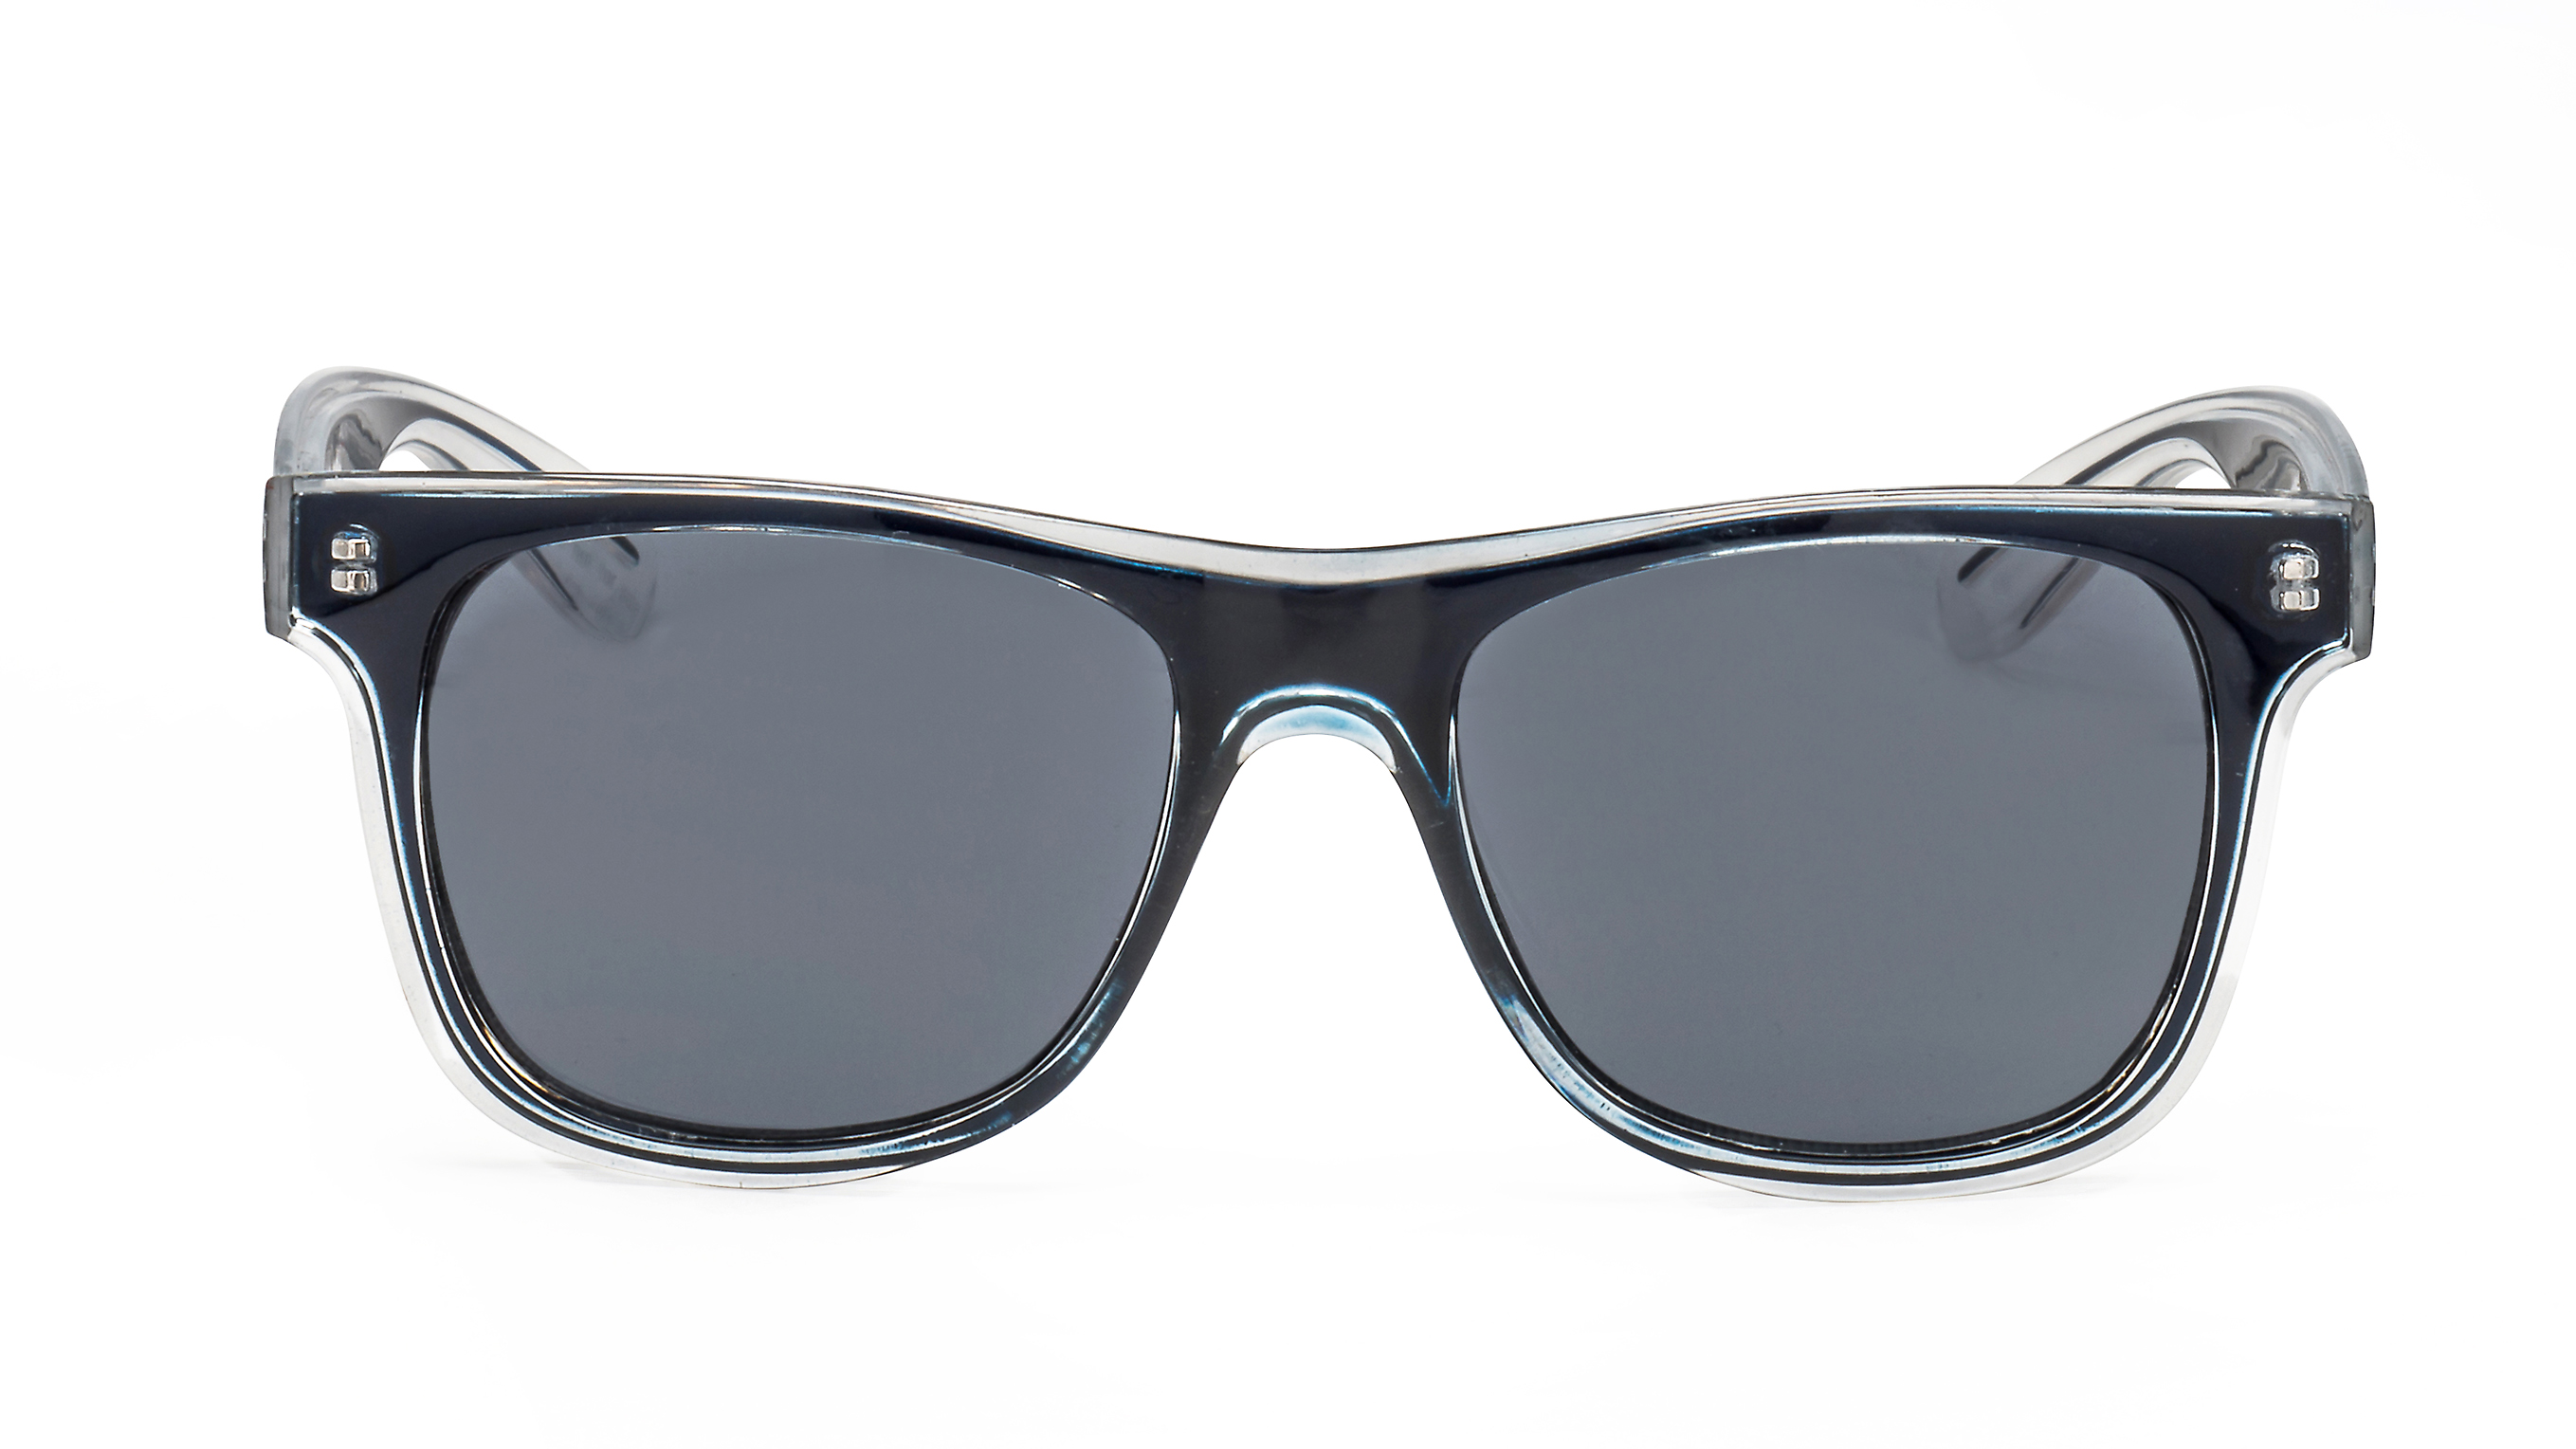 Front view sunglasses 3001518